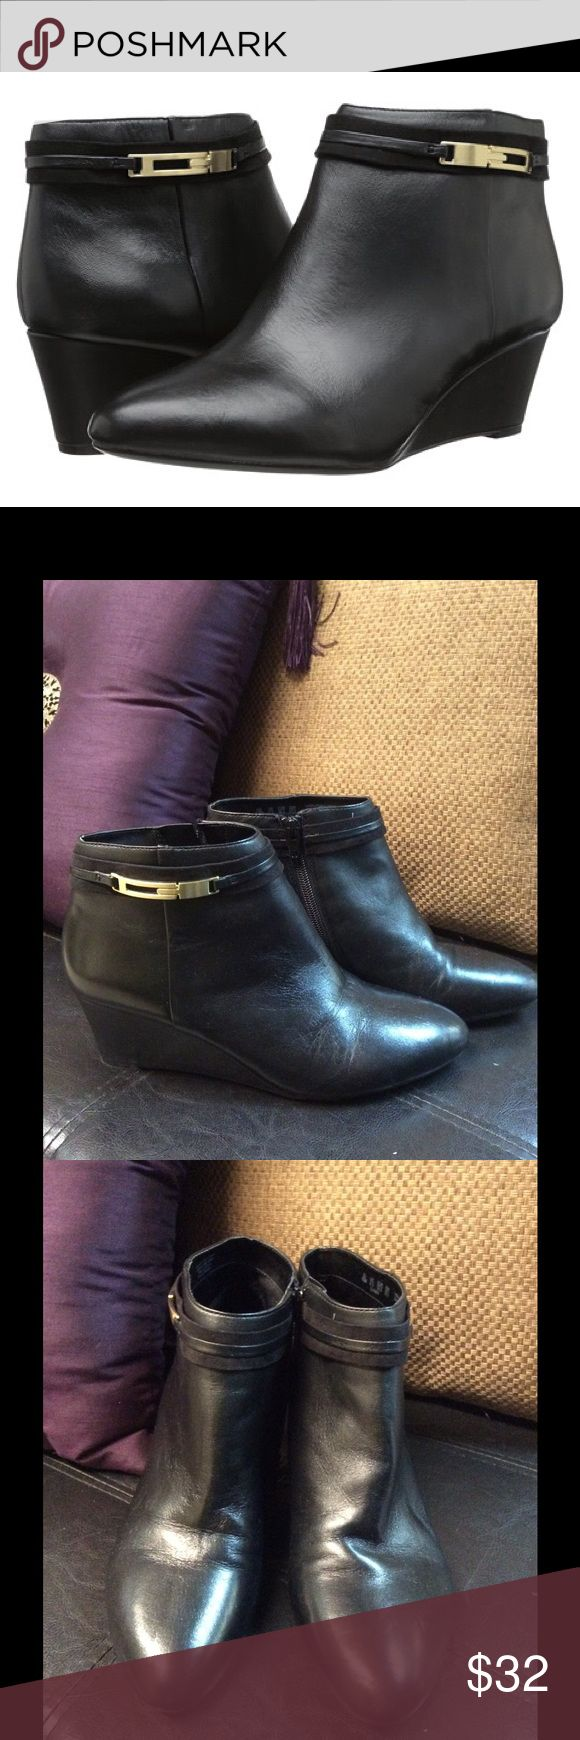 Naturalizer Black Booties Gorgeous boots in excellent condition. Worn only a handful of times. No stains or scuffs marks. Perfect with any outfit. Naturalizer Shoes Ankle Boots & Booties